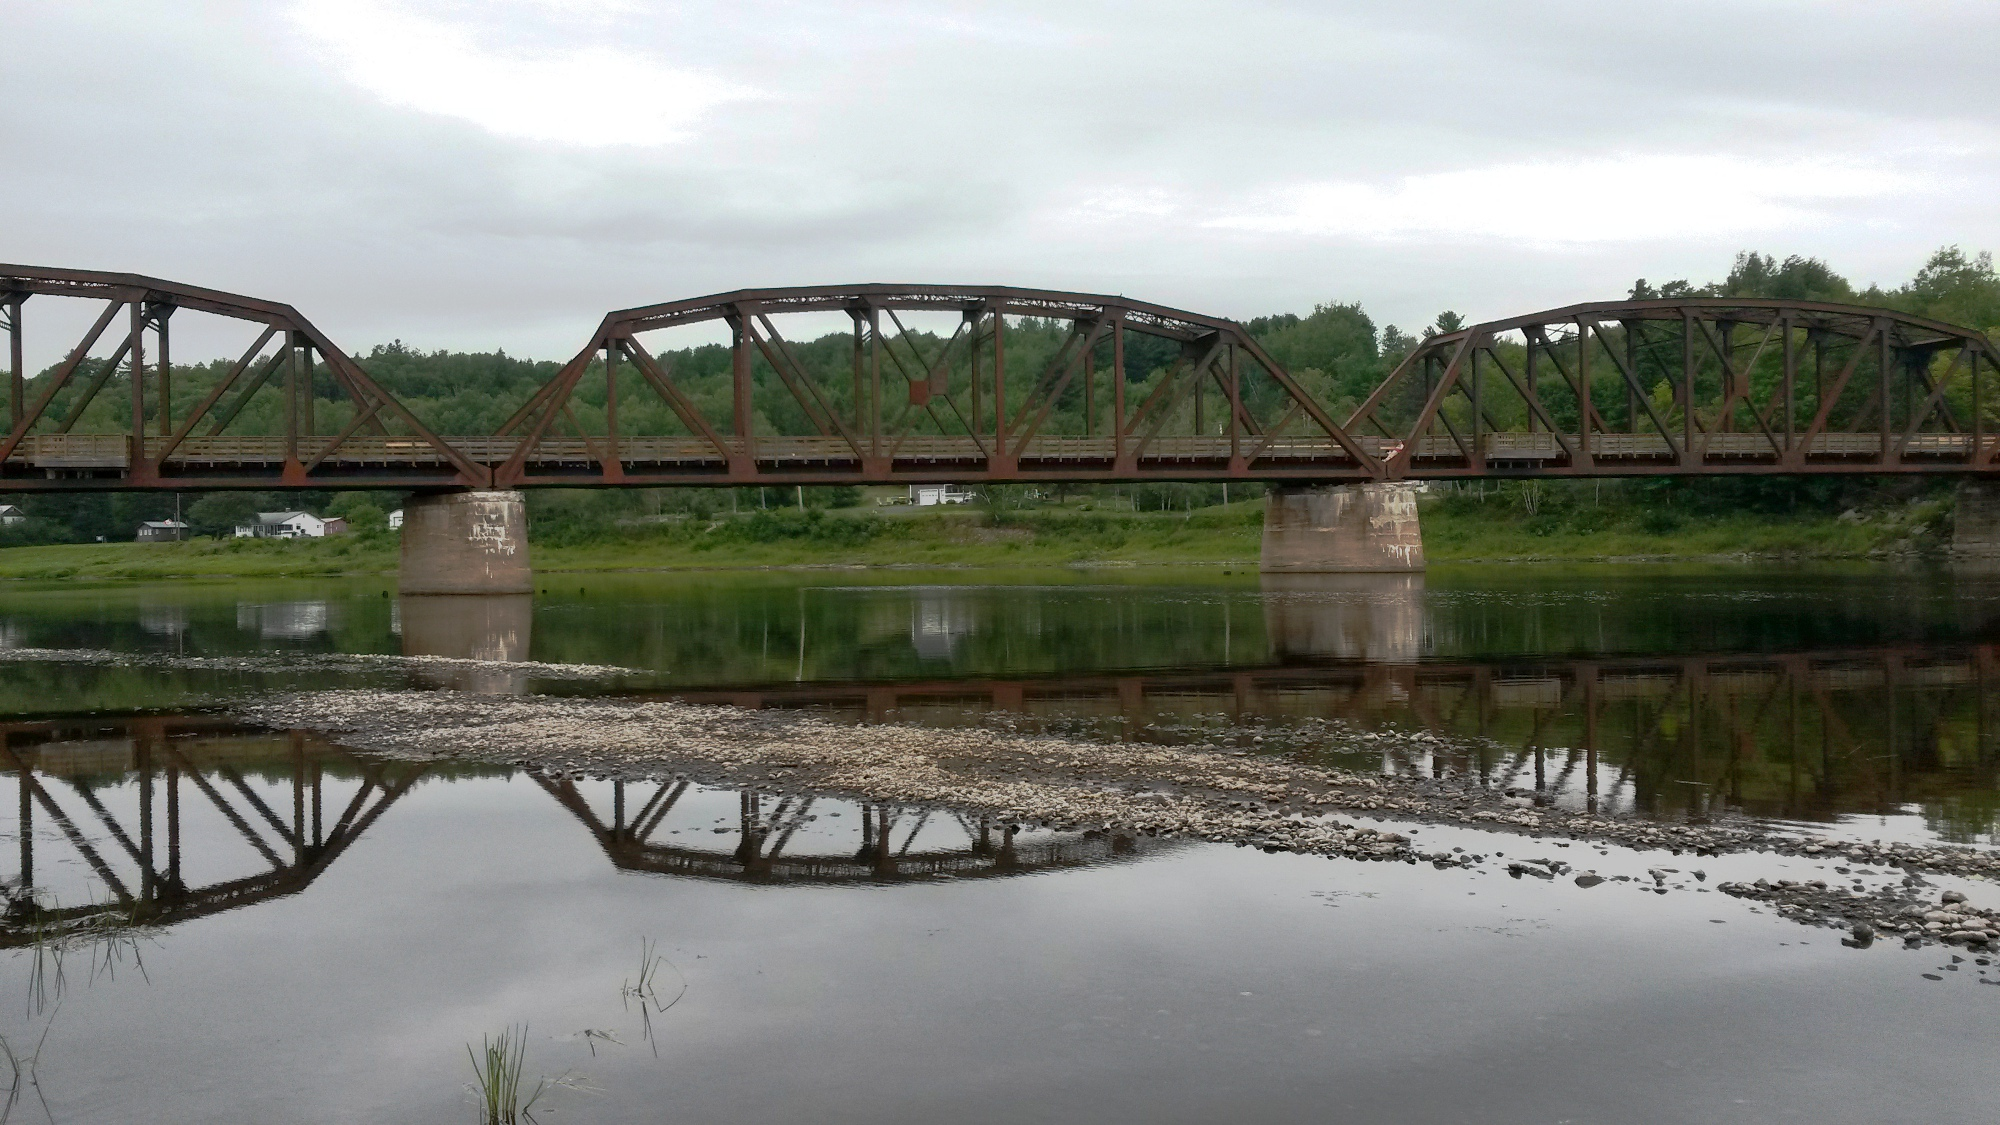 Old train bridge in Doaktown